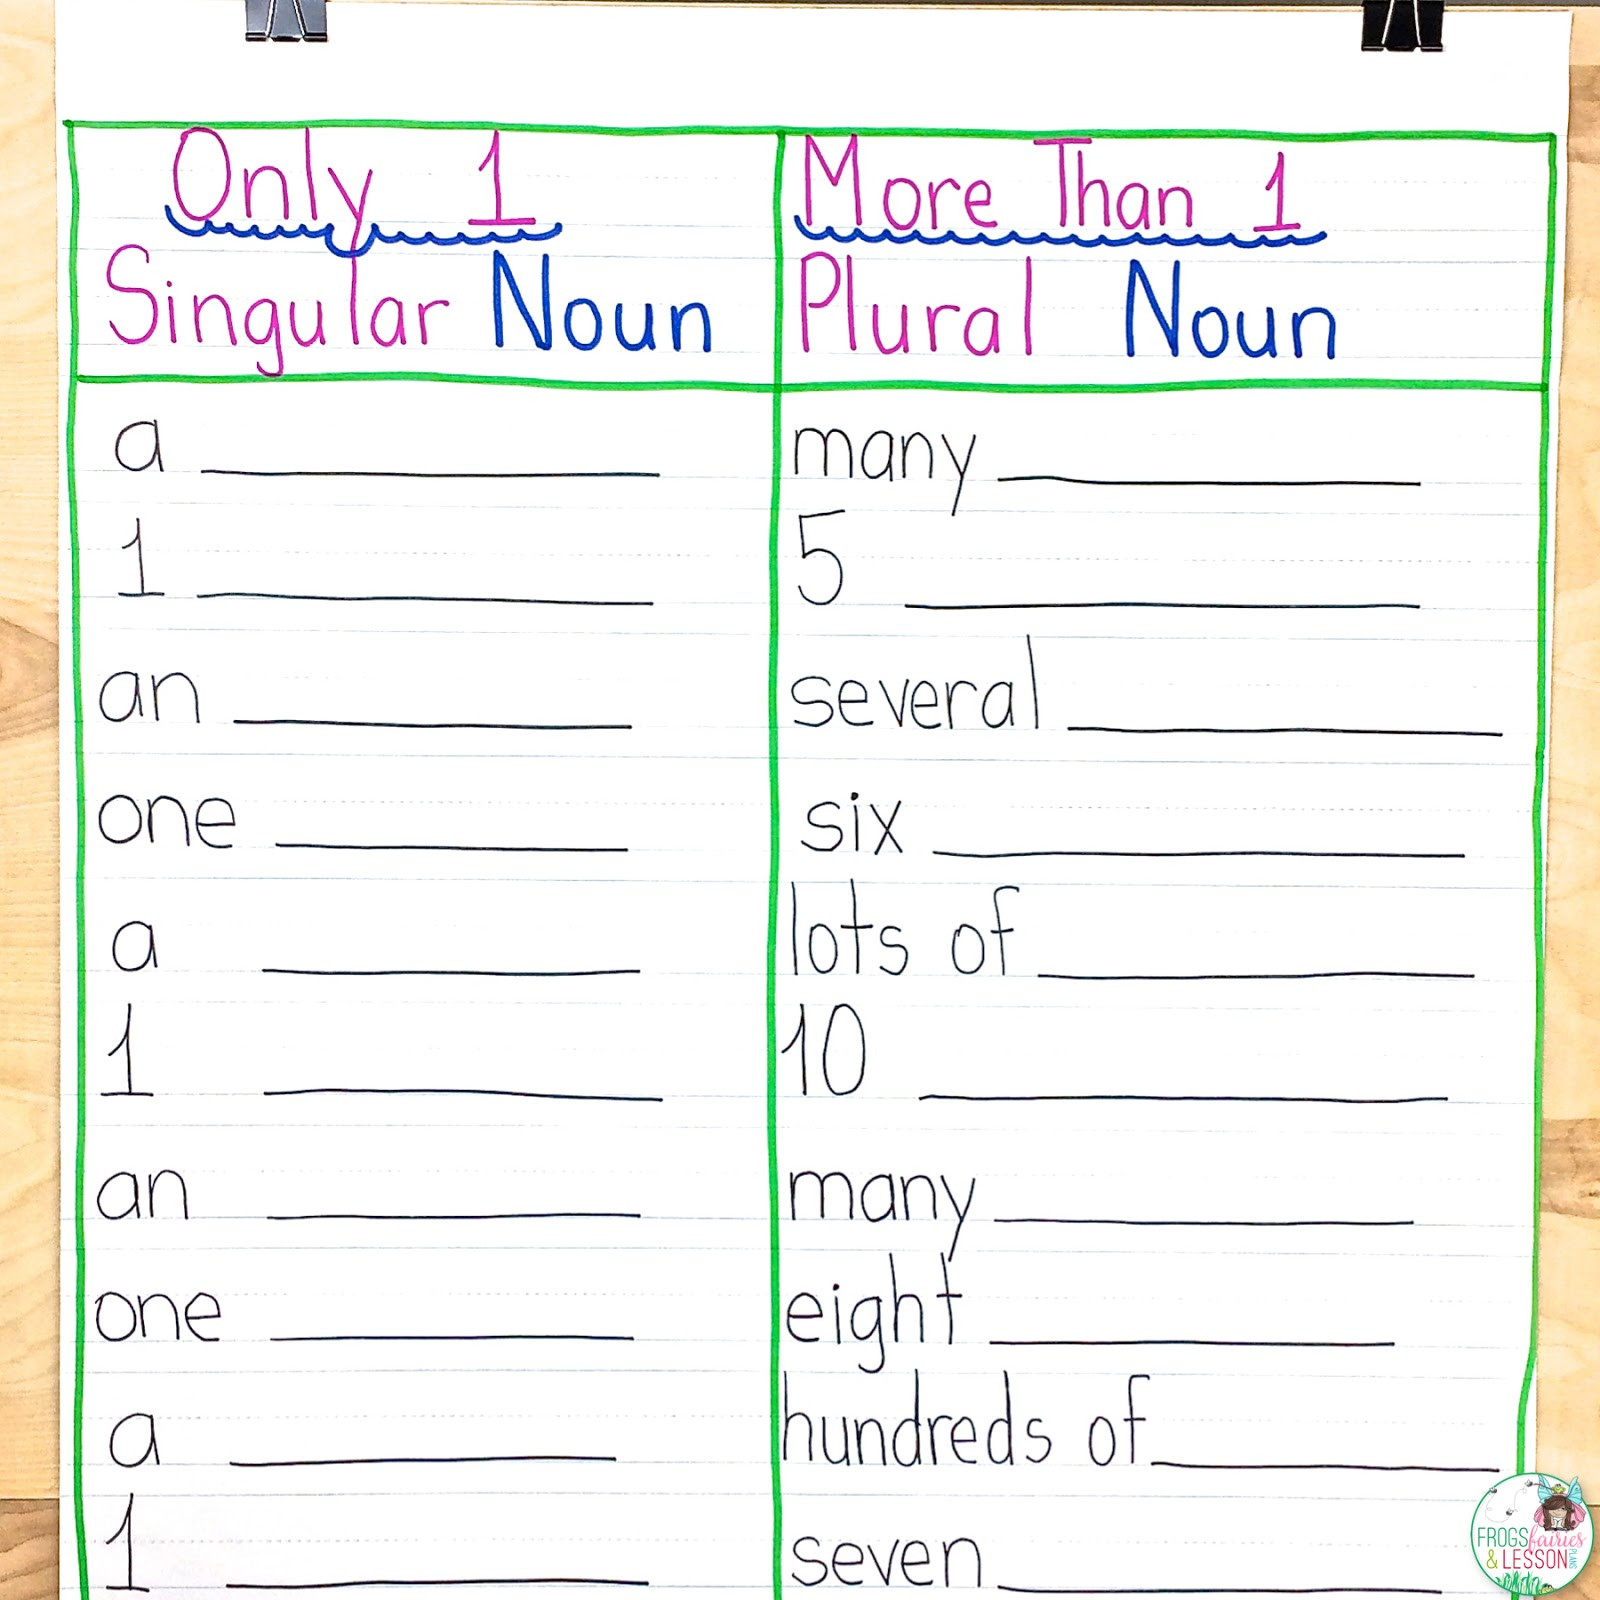 Possessive Nouns Worksheets 1st Grade Frogs Fairies and Lesson Plans 5 Noun Lessons You Need to